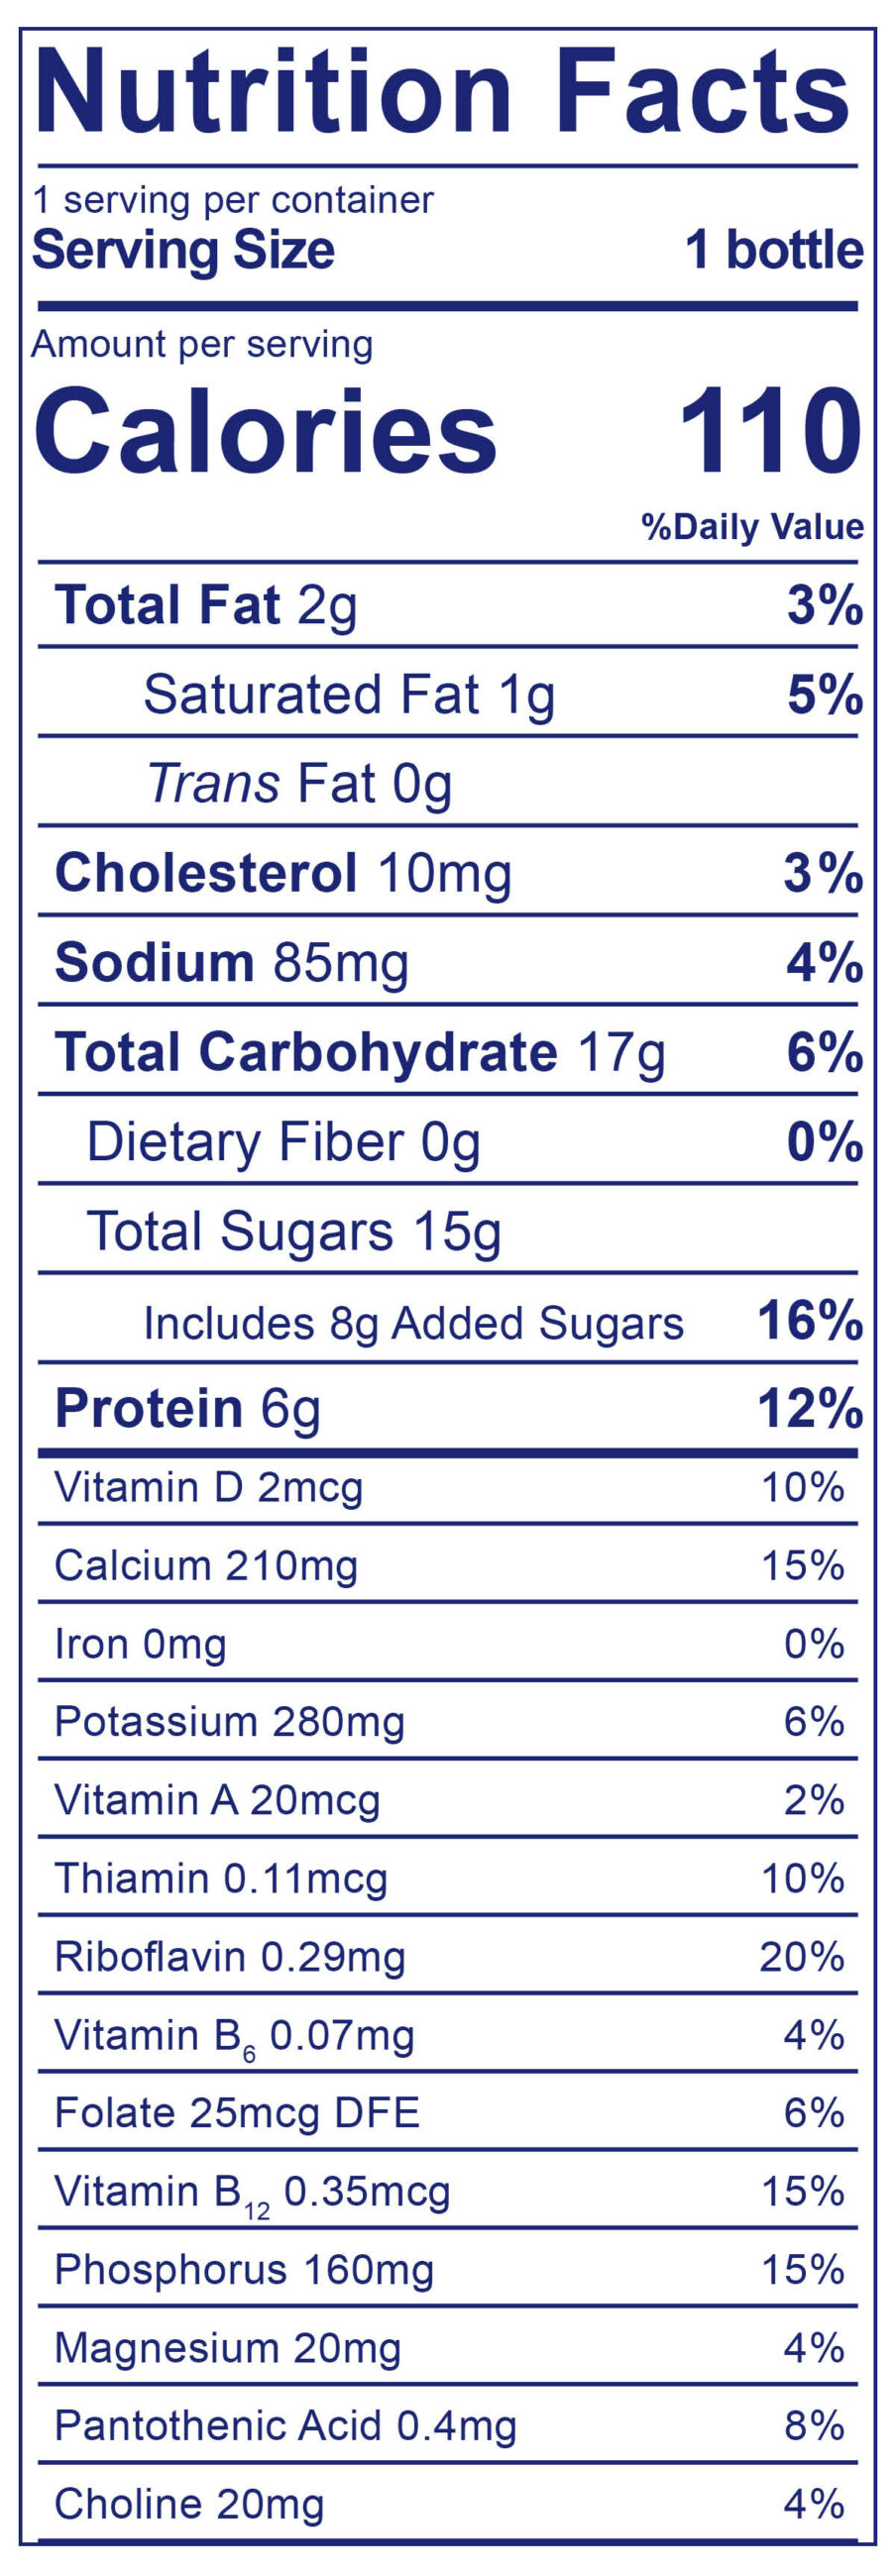 Low Fat Strawberry Smoothie - Nutrition Facts